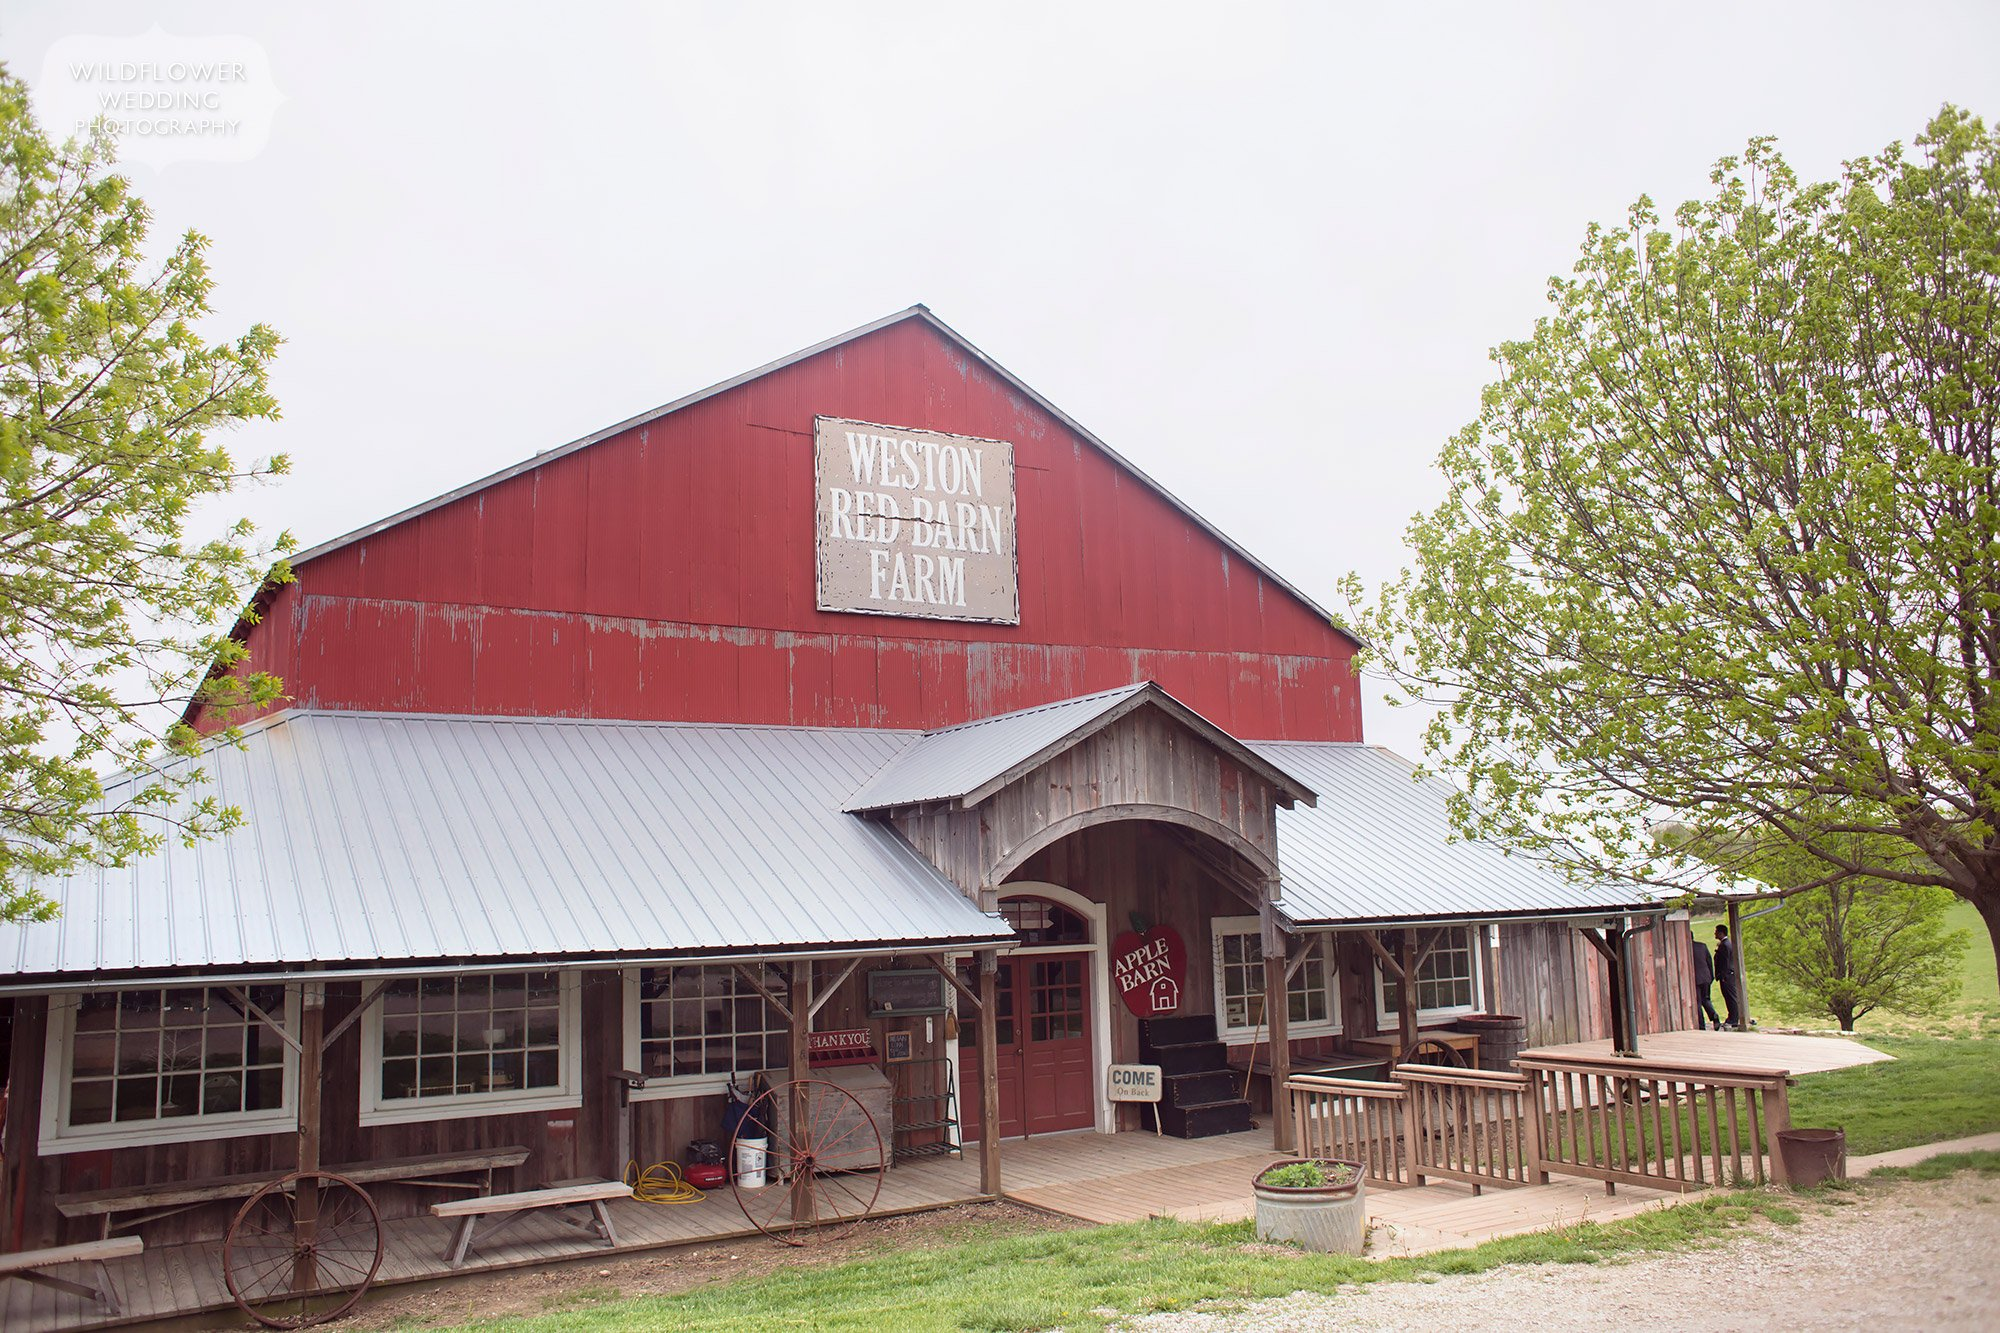 View of the Weston Red Barn Farm store, a rustic wedding venue just north of Kansas City, MO.